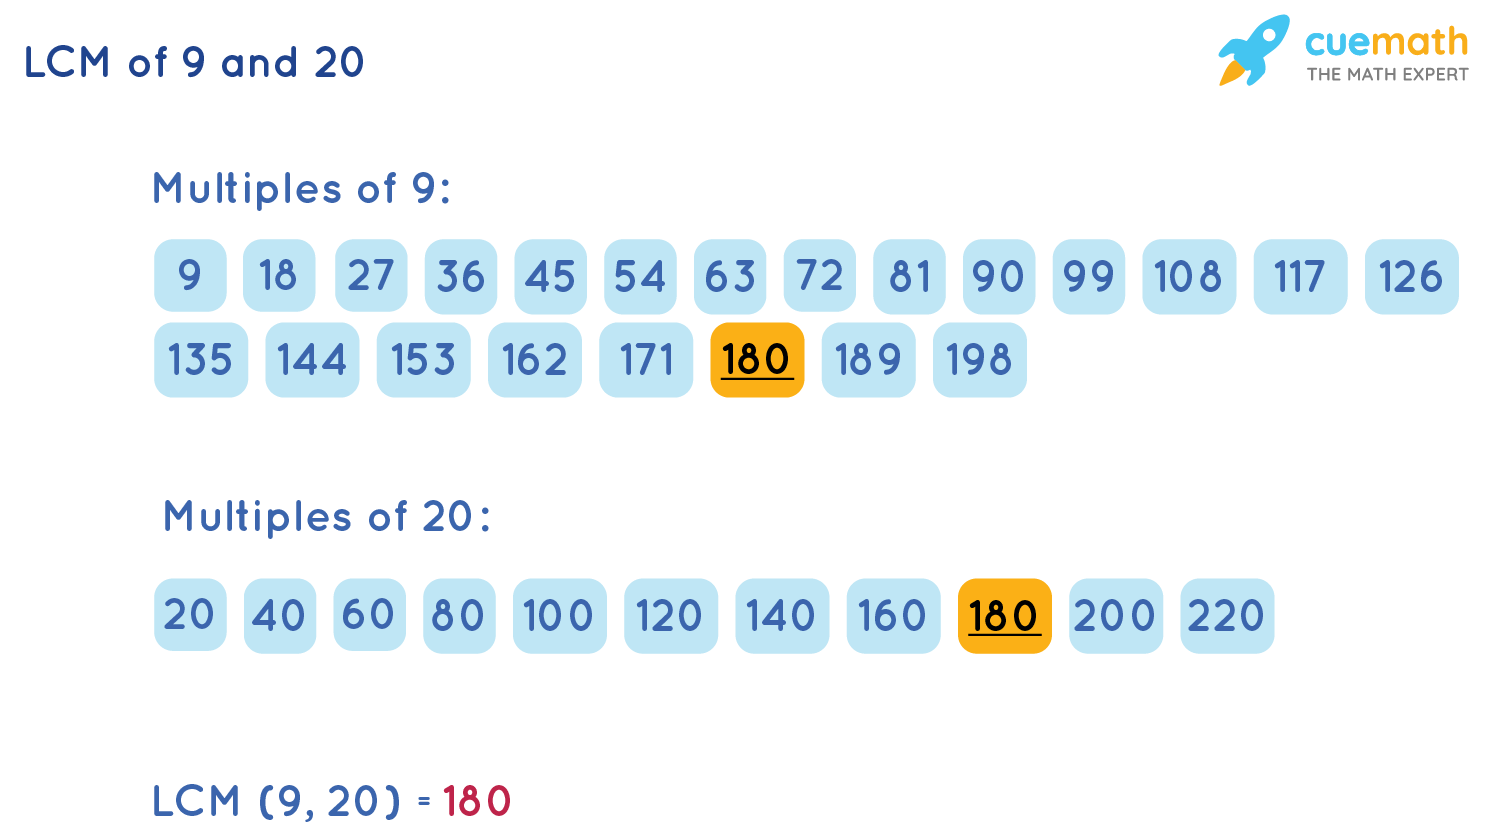 LCM of 9 and 20 by Listing Method